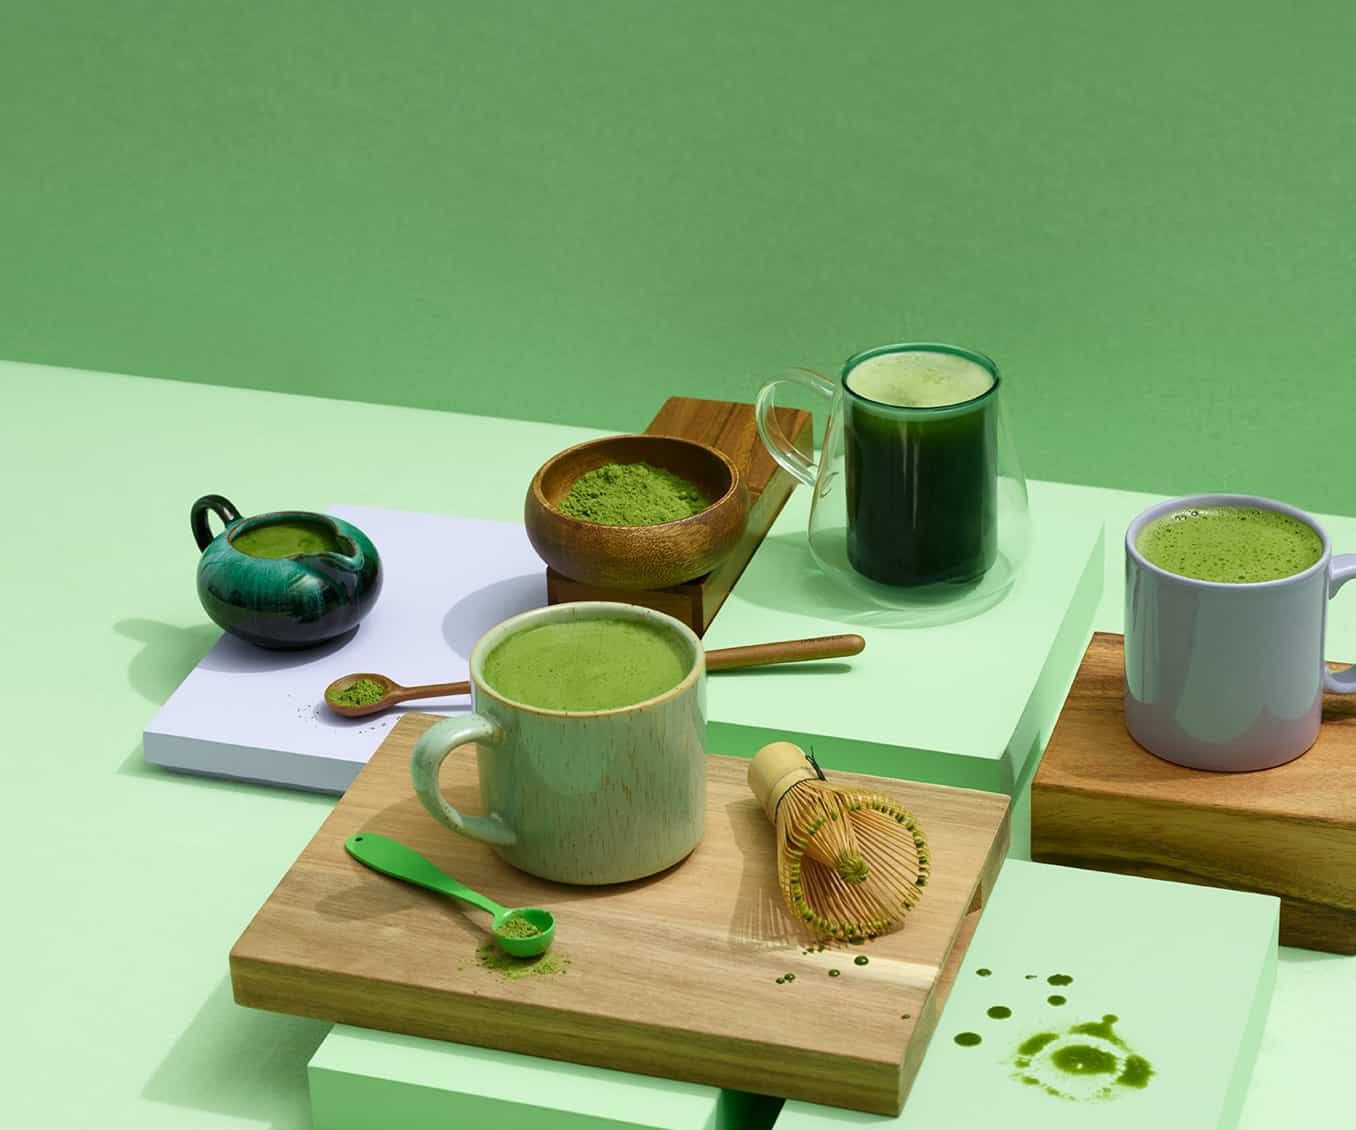 Assortment of 12 oz ceramic tea mugs filled with matcha tea, bamboo matcha whisk, bamboo spoon and bowl with matcha powder.